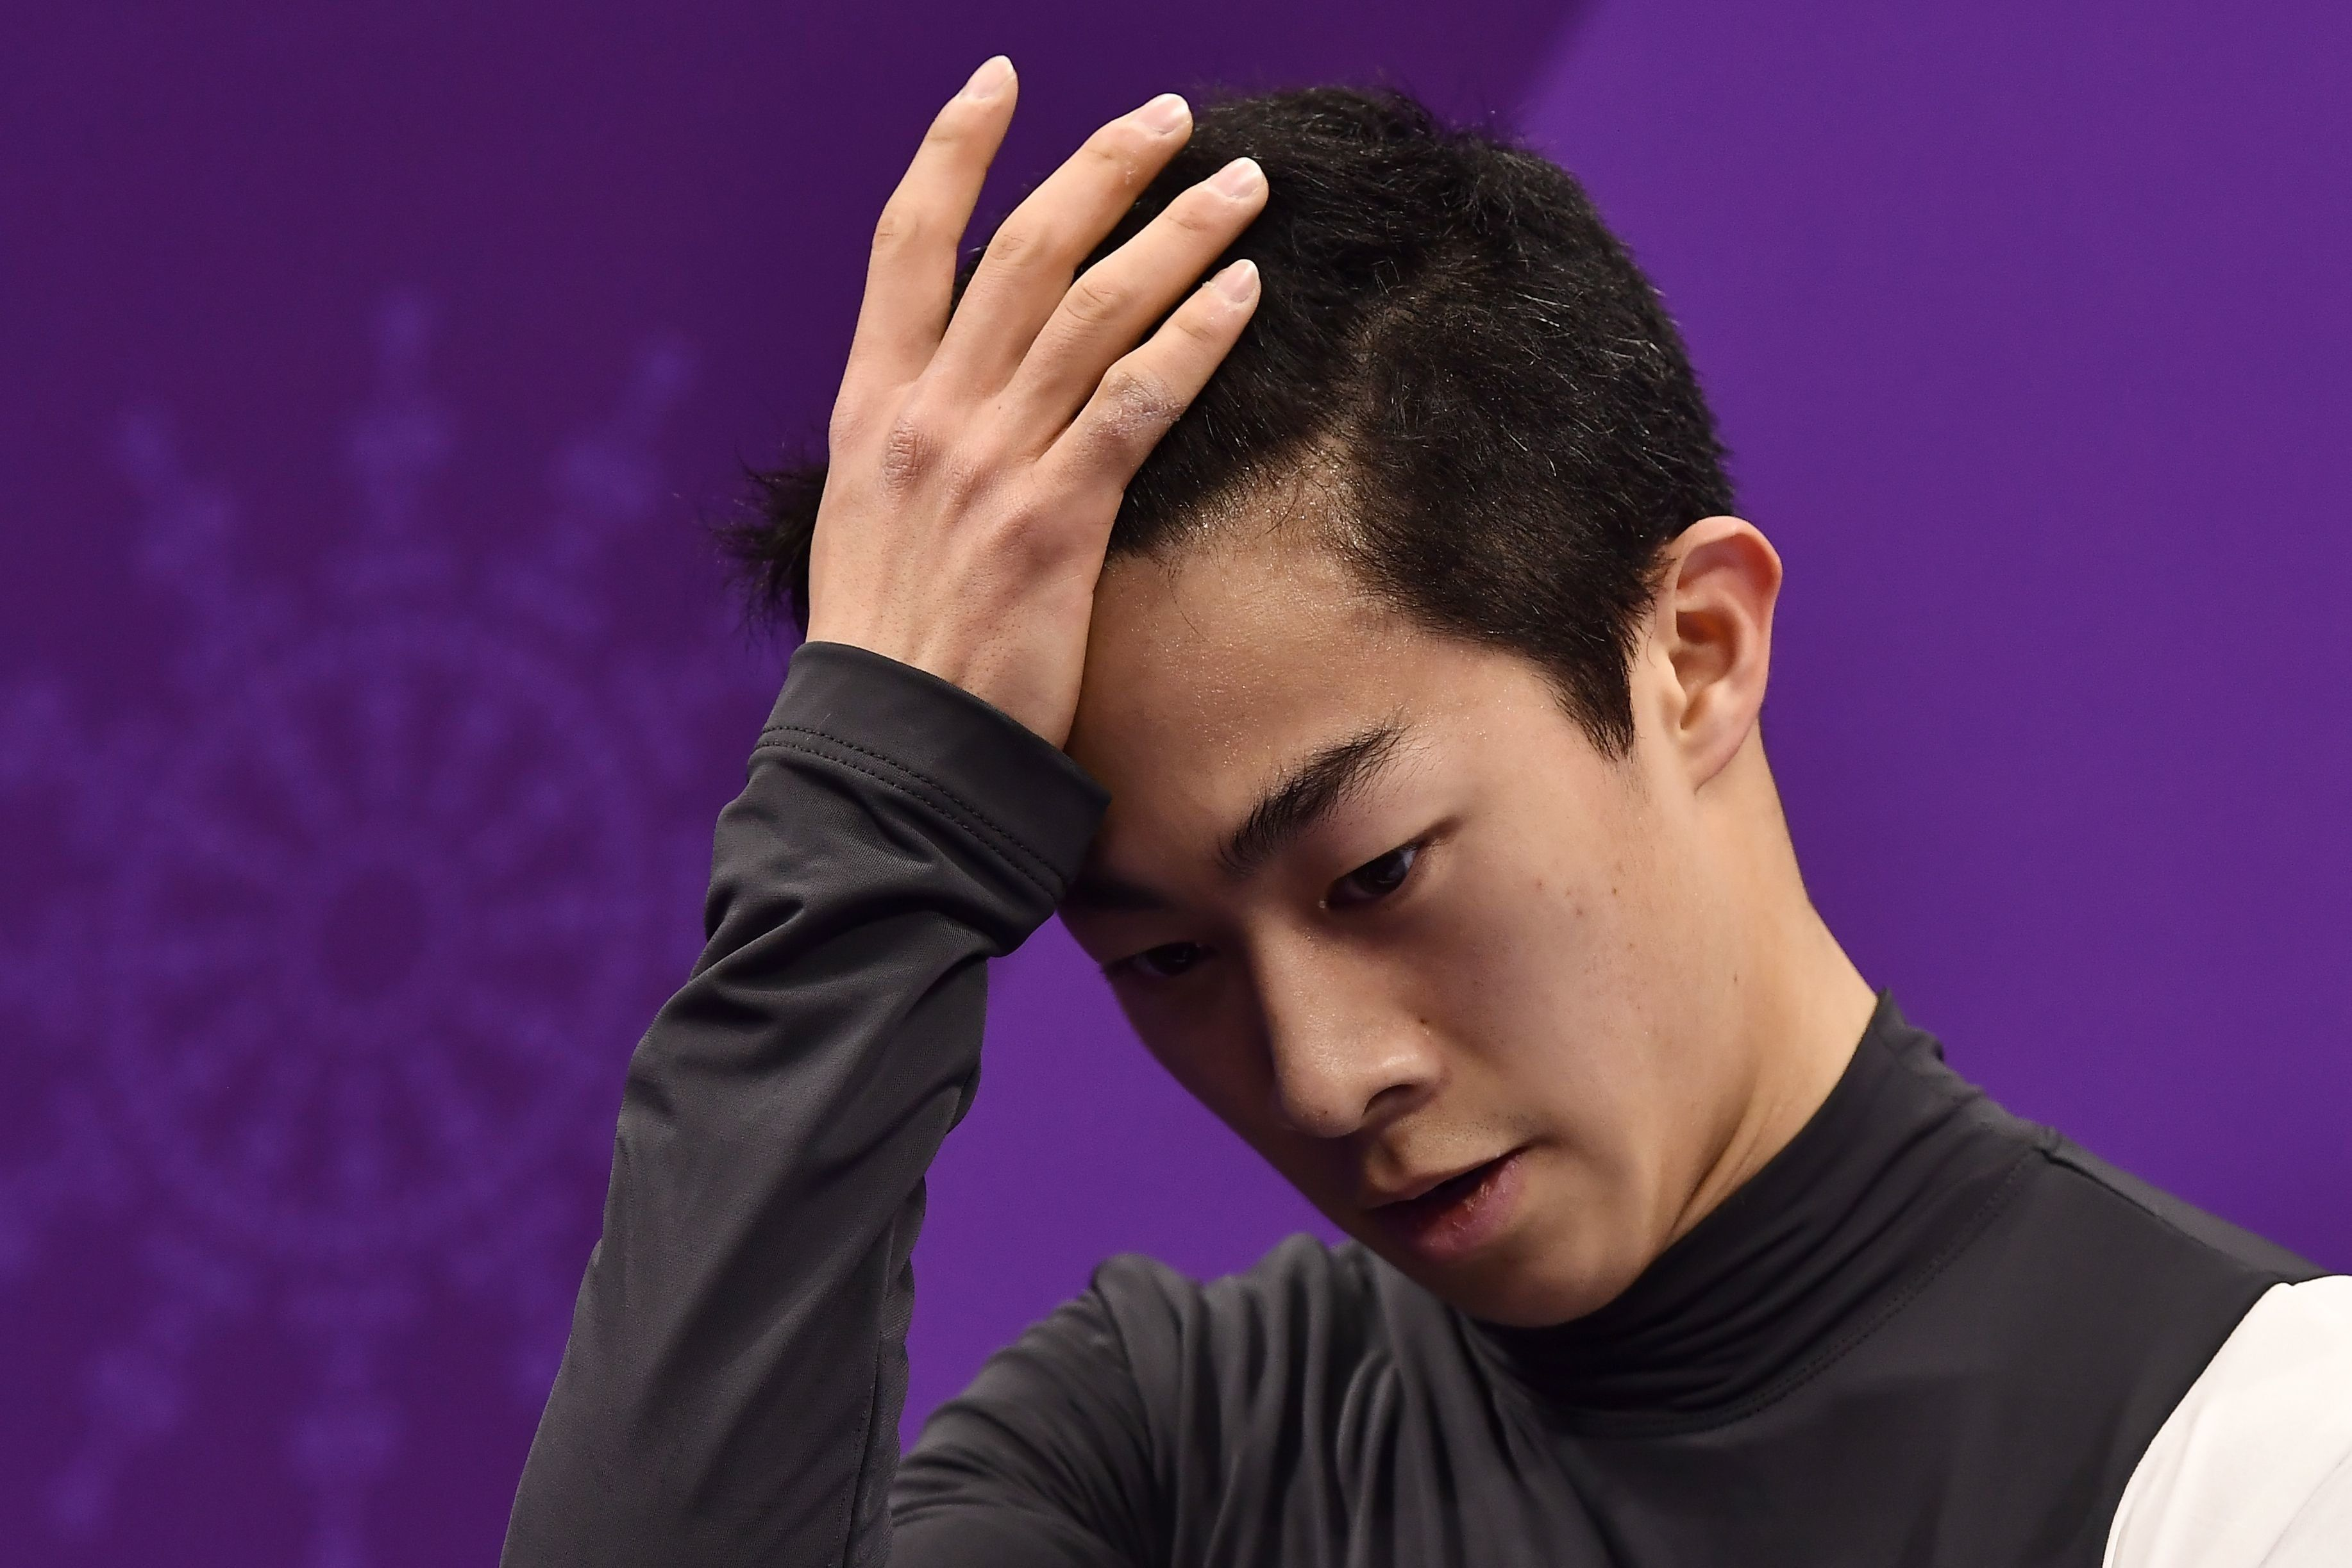 OLYMPICS/ Clash of titans looms for Hanyu and Chen